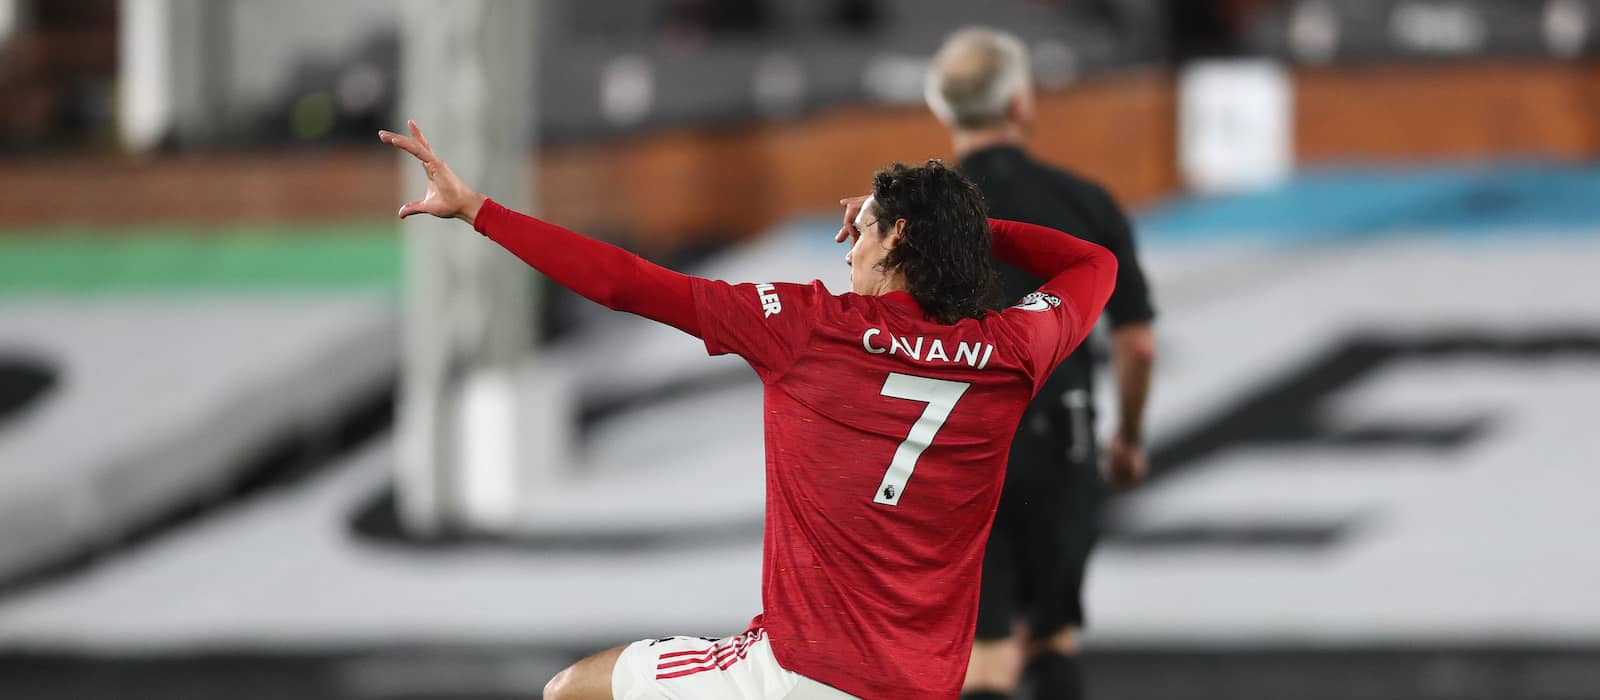 Ole Gunnar Solskjaer: I can go on and on about Edinson Cavani's qualities